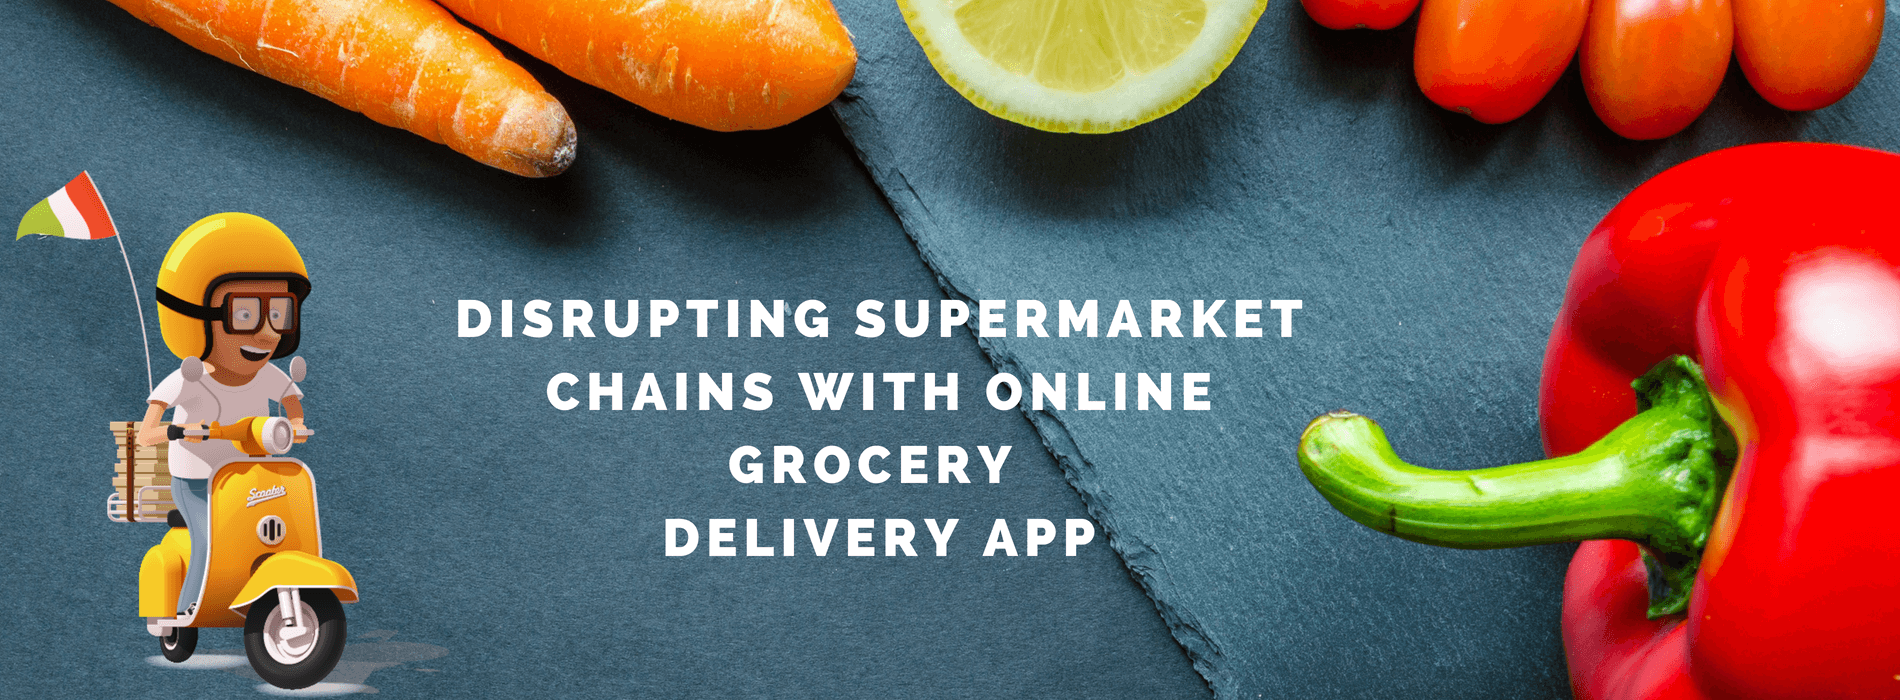 Benefits of Grocery Delivery App